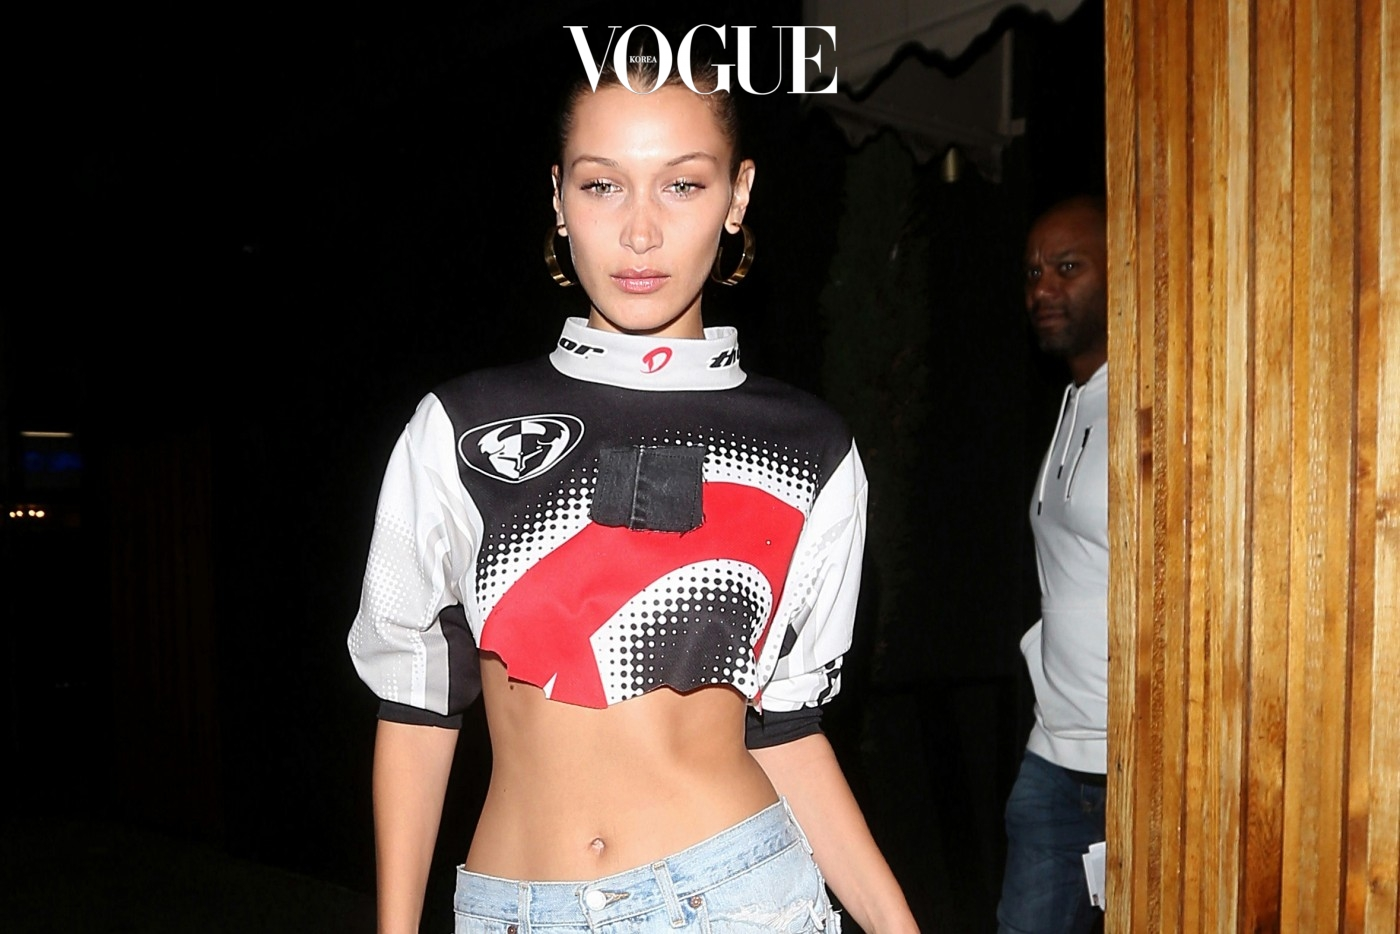 Bella Hadid shows off her midriff in a cut off shirt and jeans as she leaves the Nice Guy club after partying with Drake in West Hollywood. Bella arrived to the Nice Guy club at 1:20 A.M. and drake arrived at 12:45 A.M. Bella Hadid left from the front door of the Nice Guy club at 4 A.M. in the morning in one of Drake's SUV while Drake left from the back at the same time. As Bella gets into the car, you can clearly see her bra underneath her shirt.  Pictured: Bella Hadid Ref: SPL1523336  200617   Picture by: Photographer Group / Splash News  Splash News and Pictures Los Angeles:	310-821-2666 New York:	212-619-2666 London:	870-934-2666 photodesk@splashnews.com